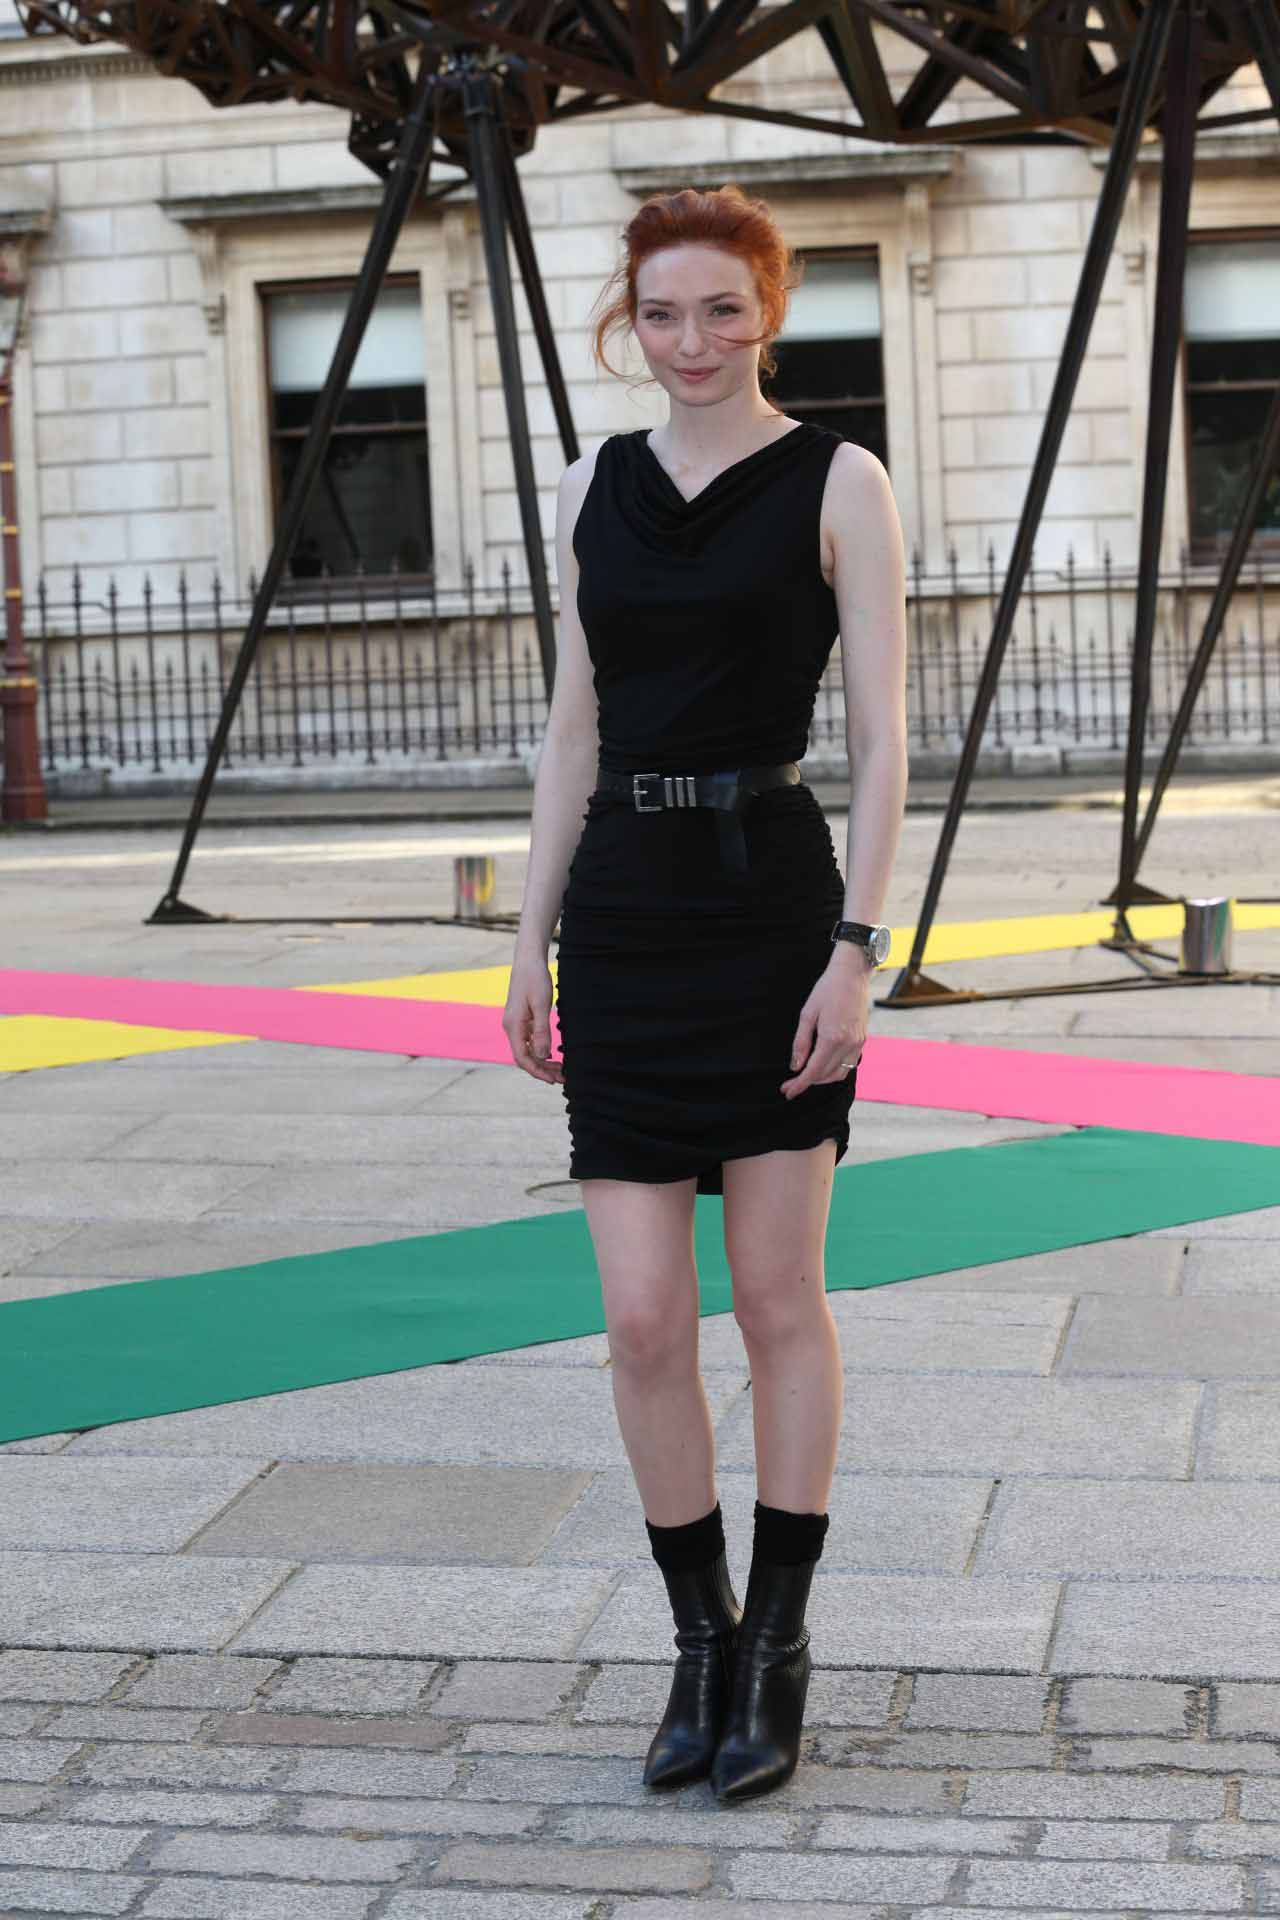 Eleanor tomlinson england actress images